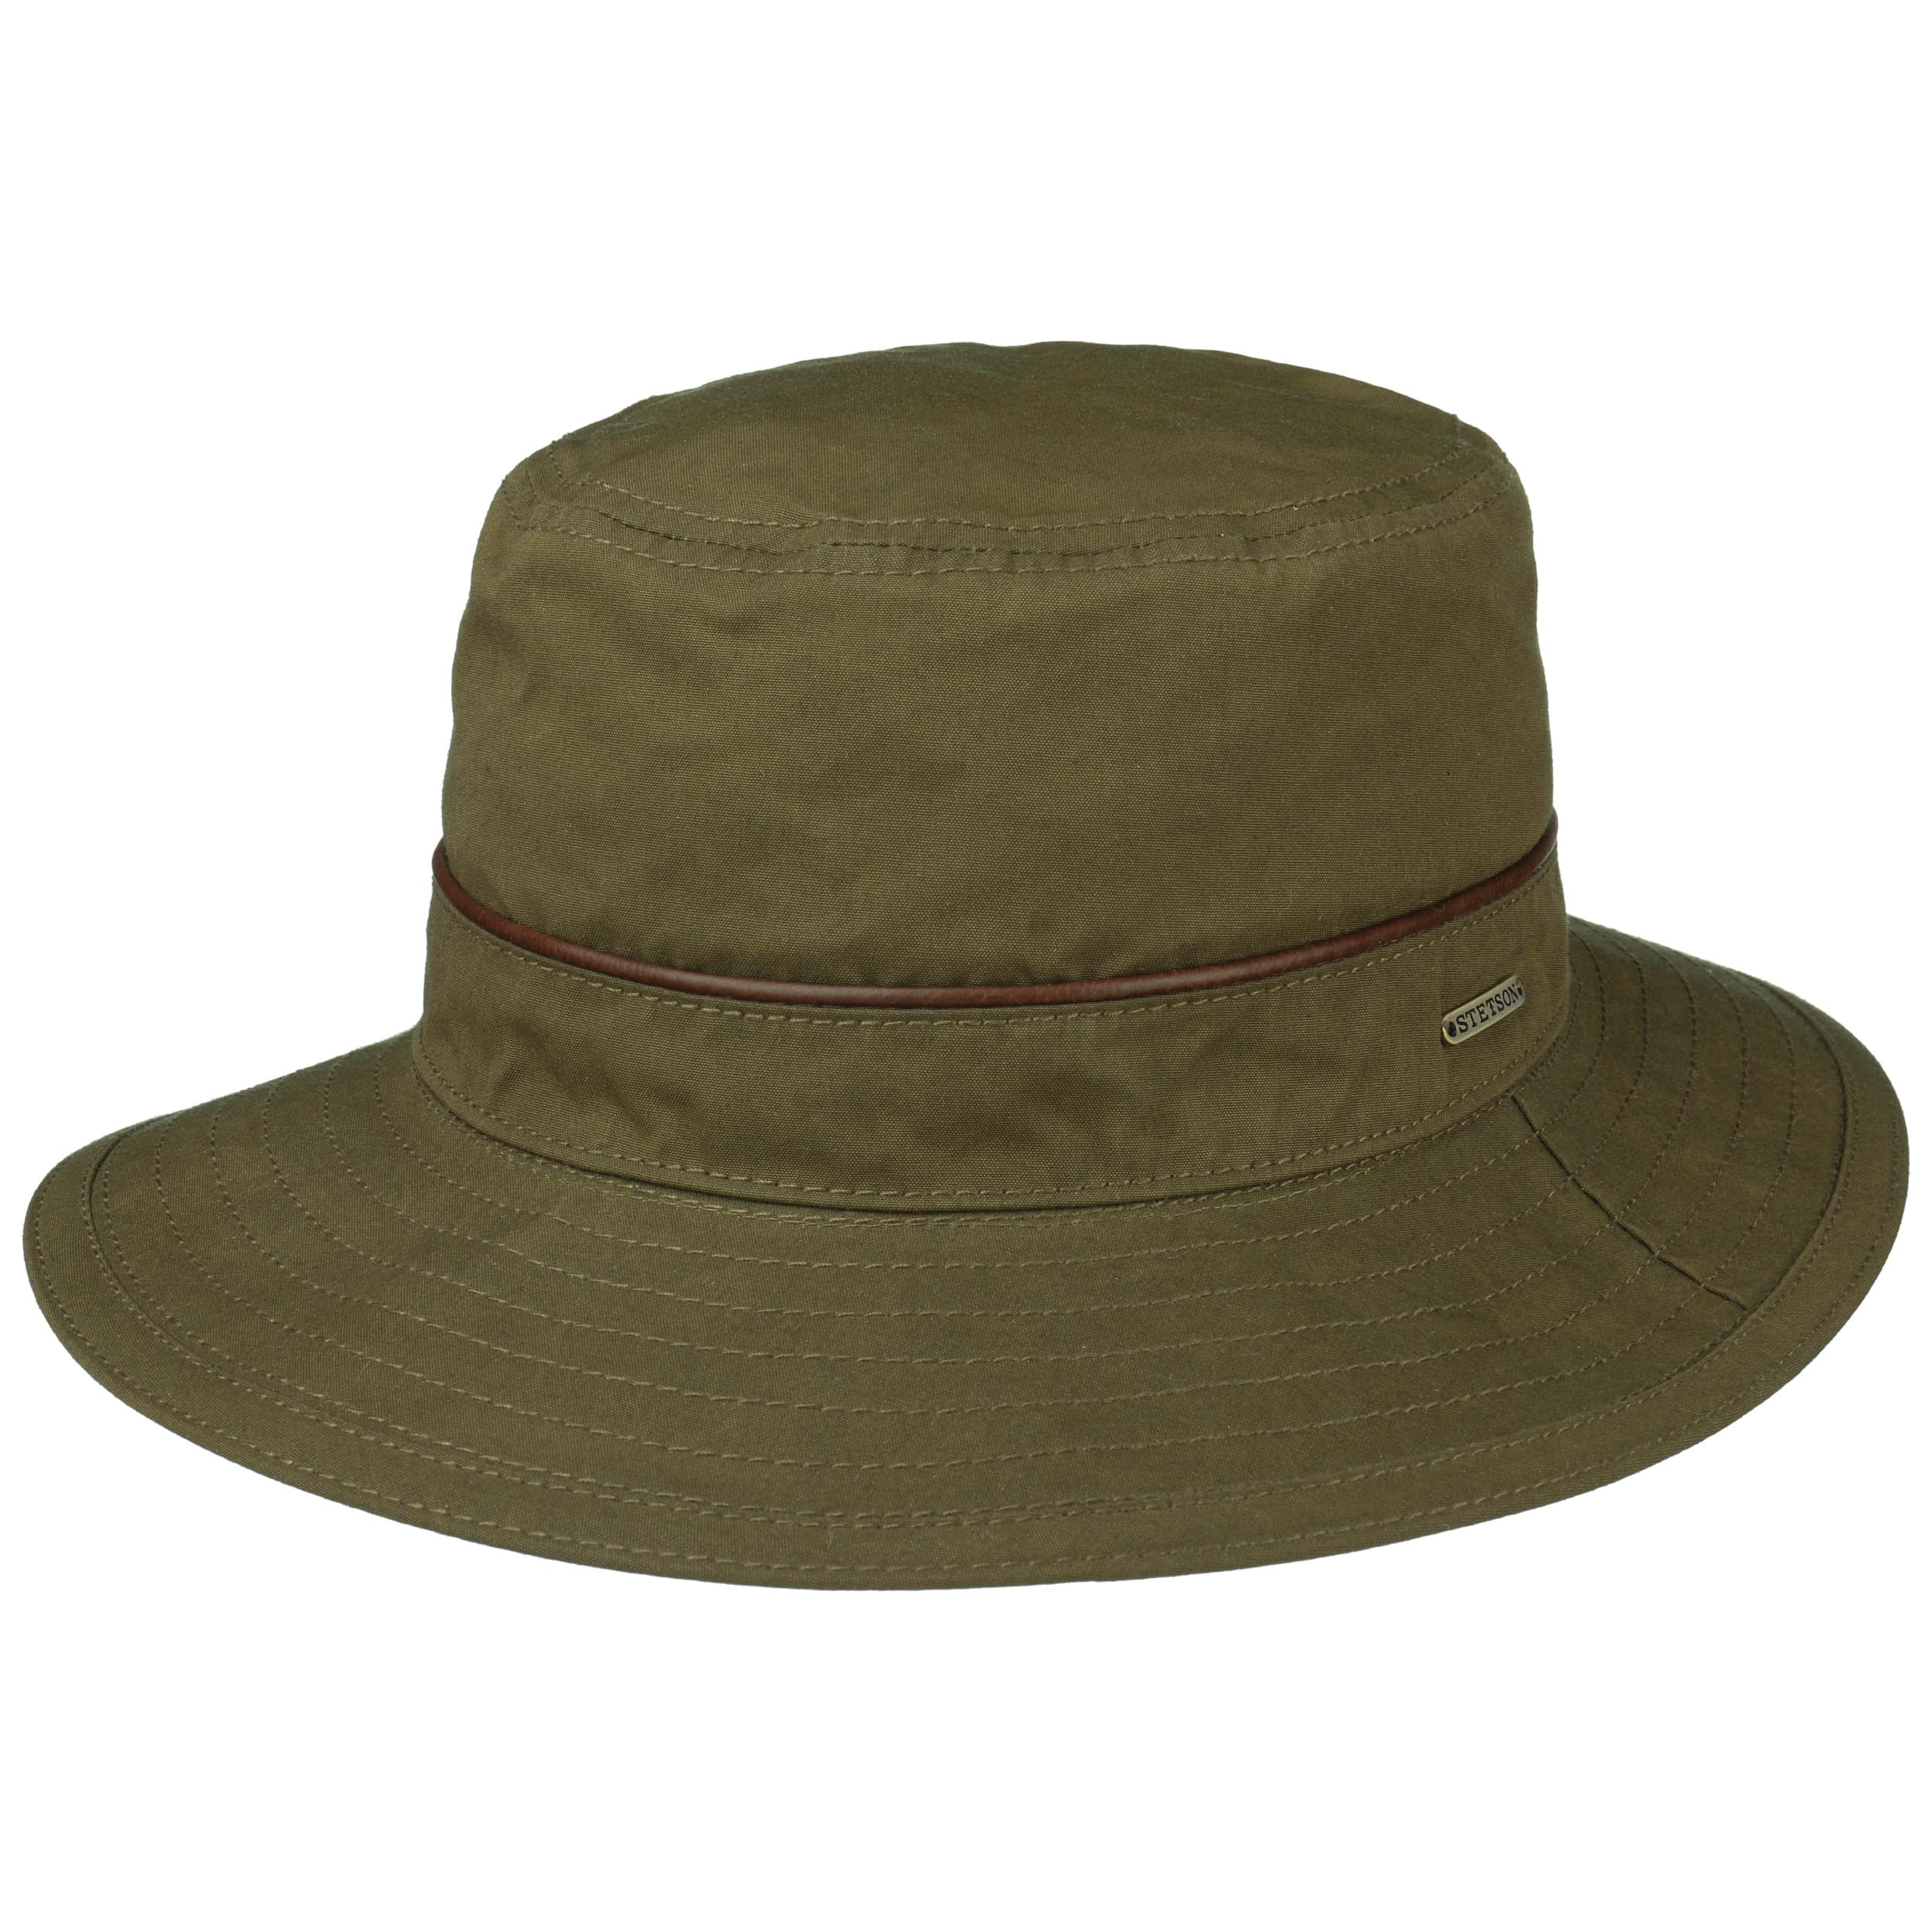 Stetson Chapeau Outdoor Waxed Cotton olive M (56-57 cm)